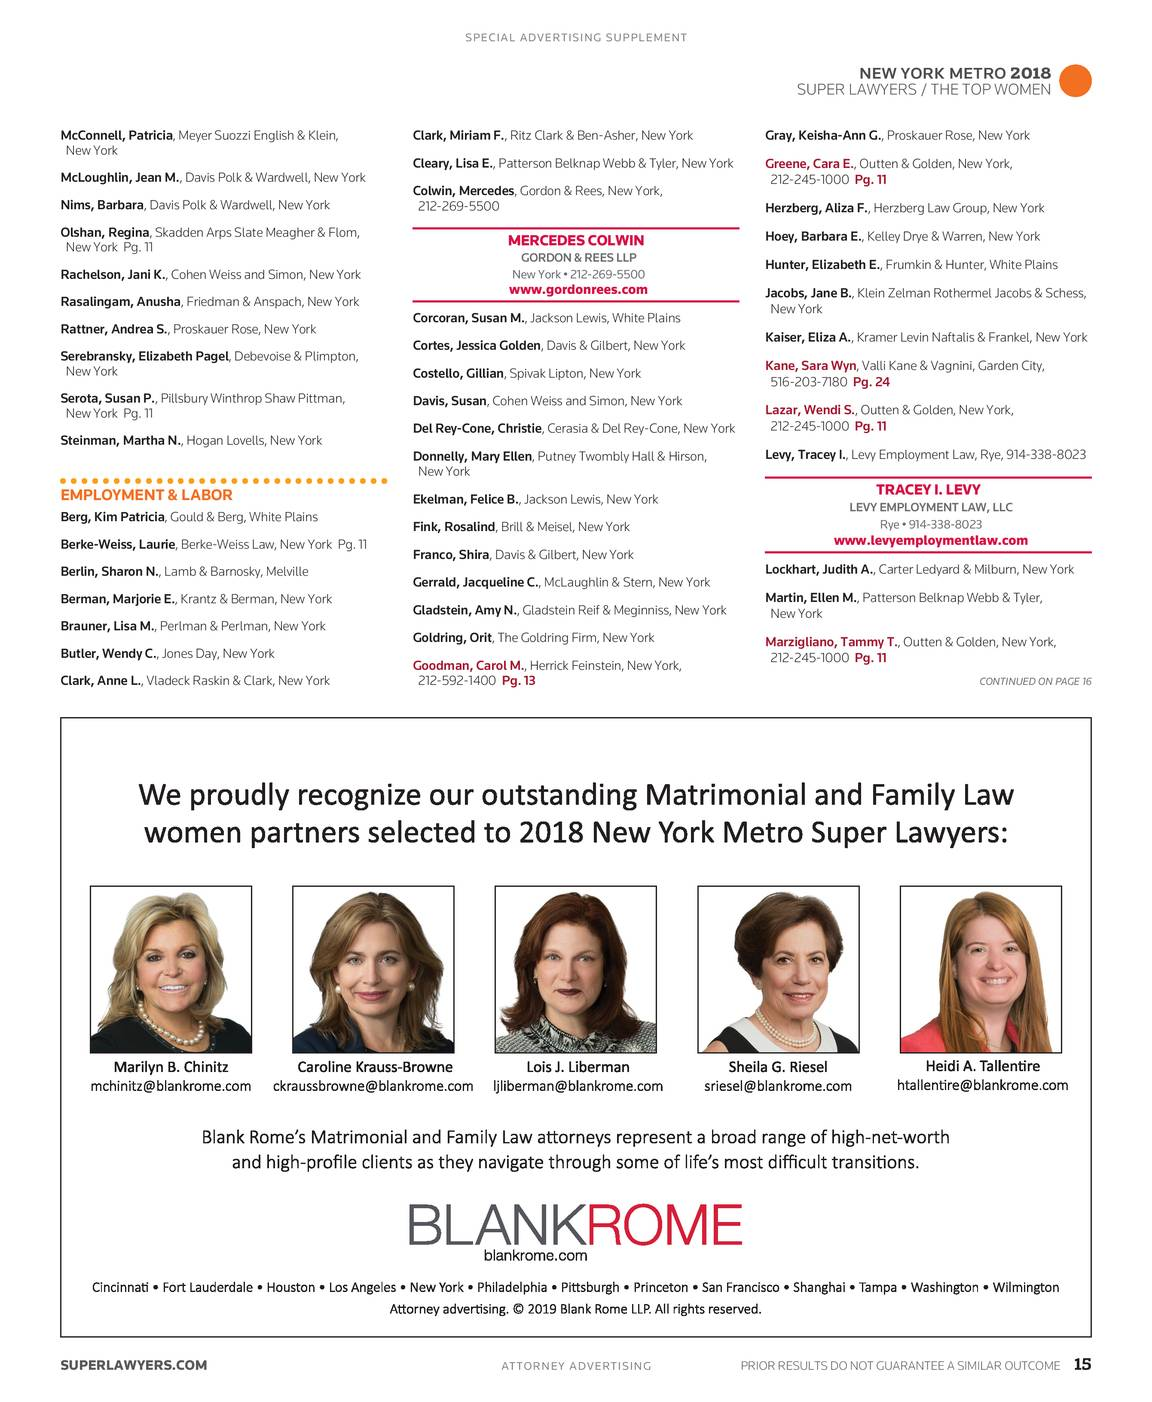 Super Lawyers - The Top Women Attorneys in New York Metro